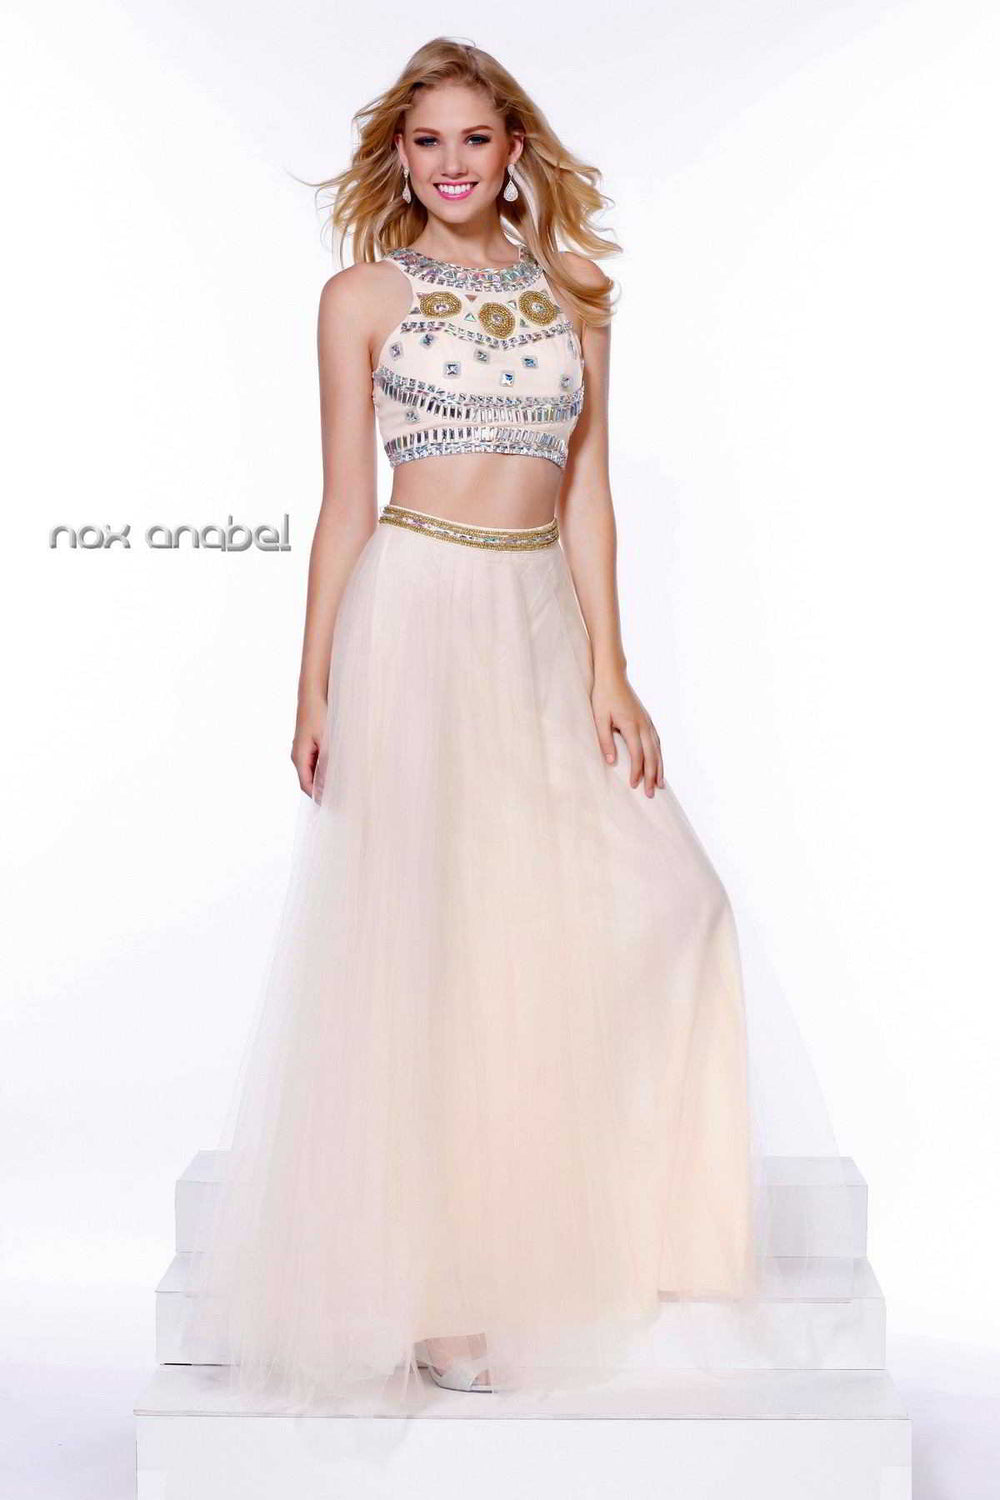 CROP TOP JEWEL NECKLINE TULLE 8162 BY NARIANNA